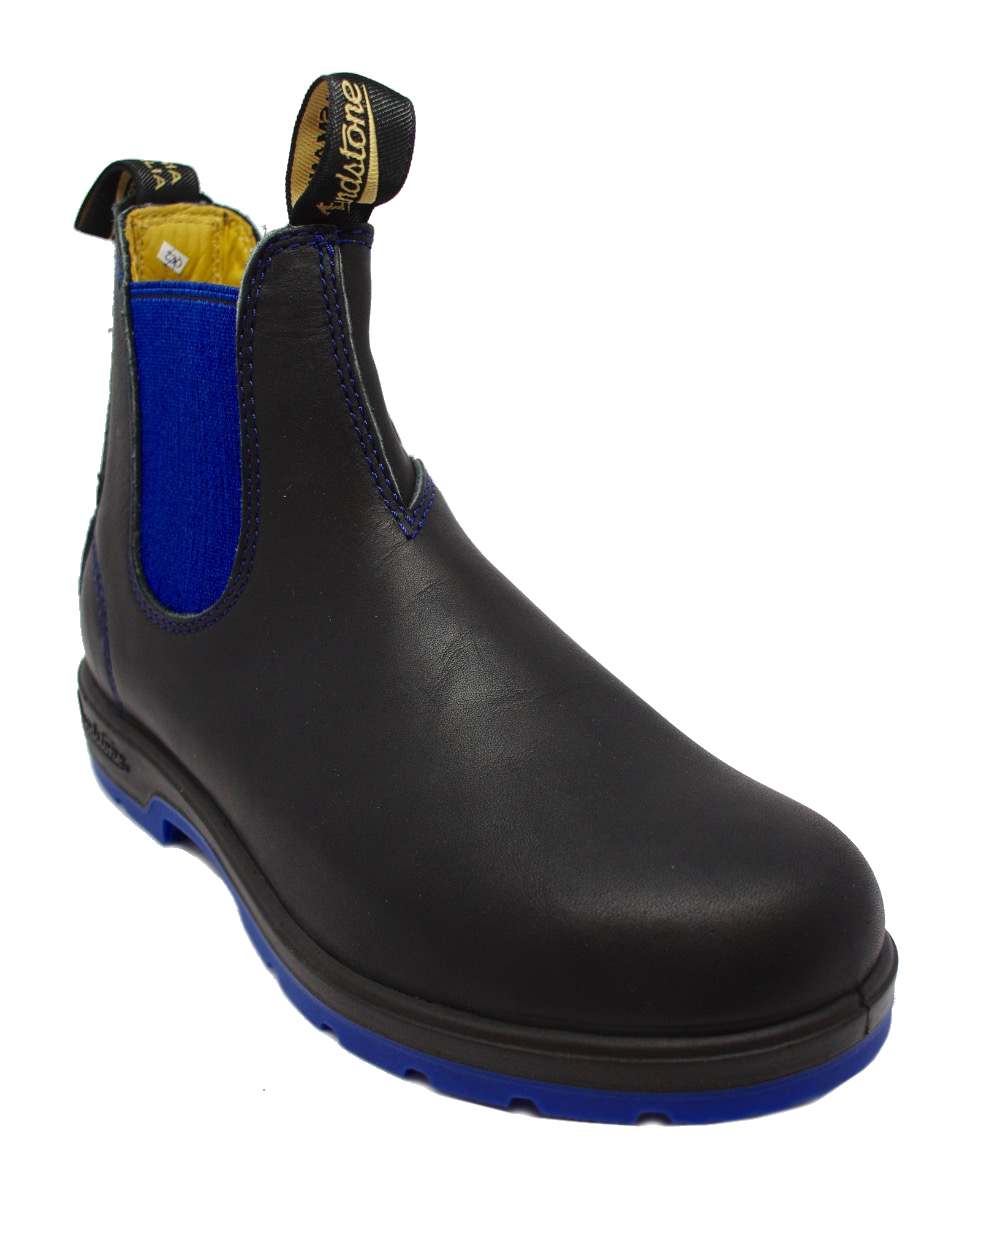 Blundstone 1403 Chelsea Boot in Black Blue Sole